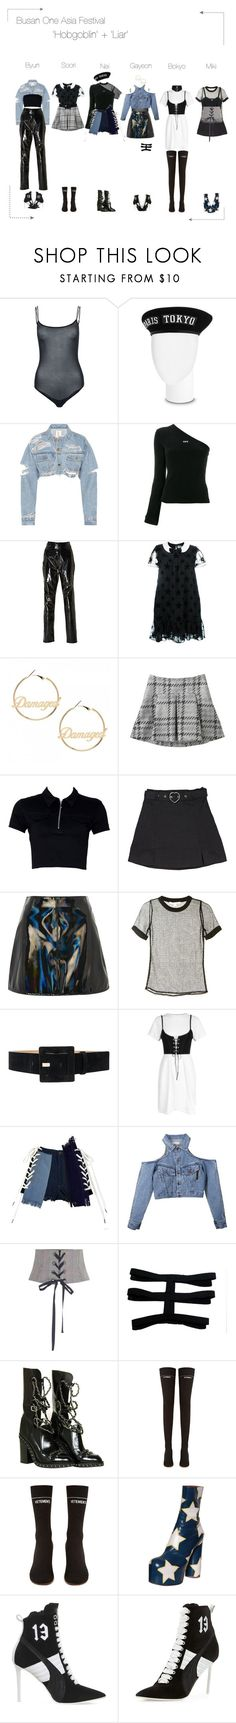 """""""Lunar (루나) Busan One Asia Festival"""" by lunar-official ❤ liked on Polyvore featuring Wolford, Off-White, Zeynep Arçay, Yves Saint Laurent, Topshop, Jonathan Simkhai, Alice + Olivia, Erika Cavallini Semi-Couture, Chanel and Vetements"""